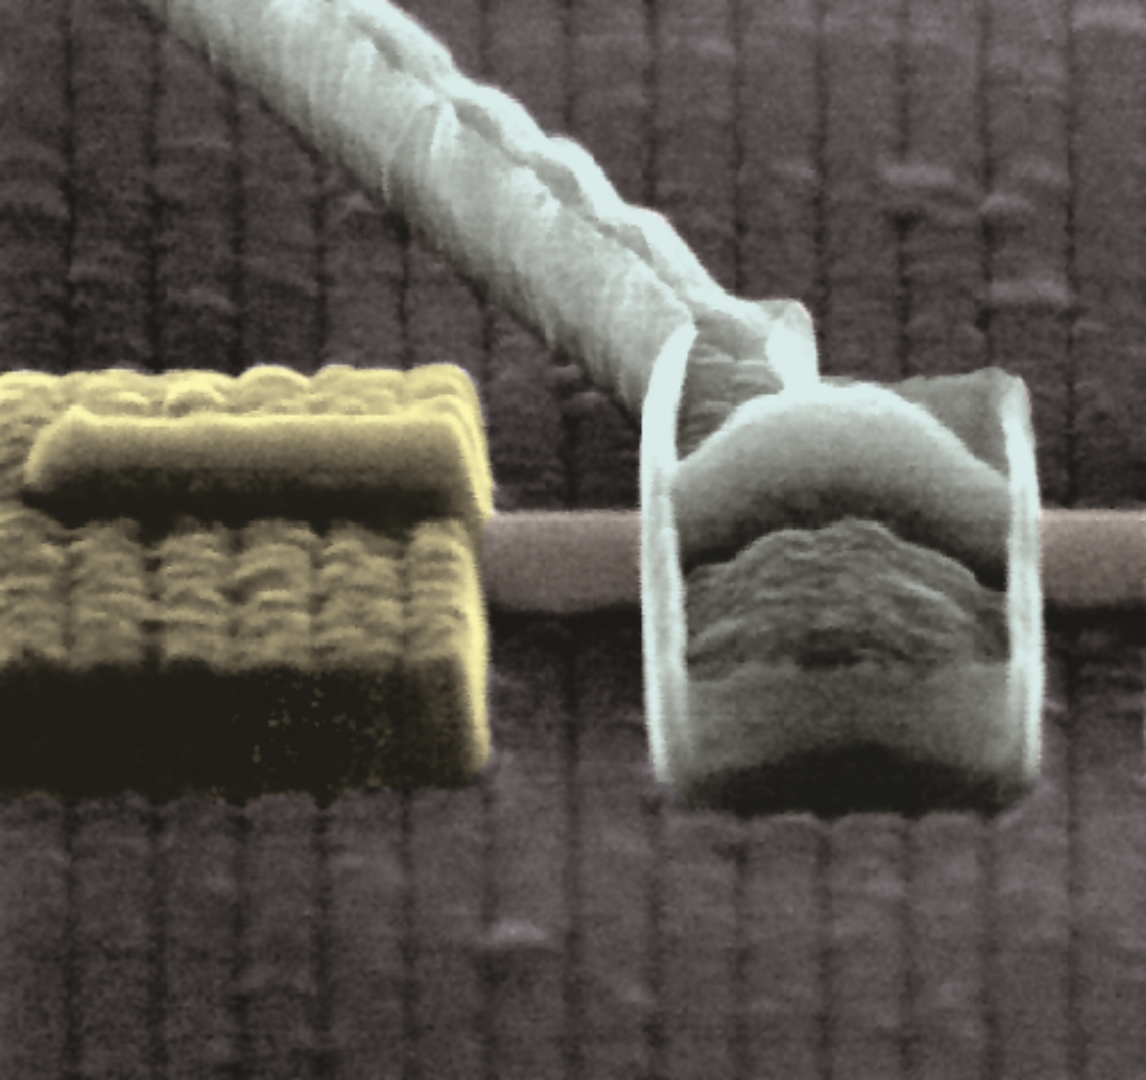 InSb superconducting nanowire device